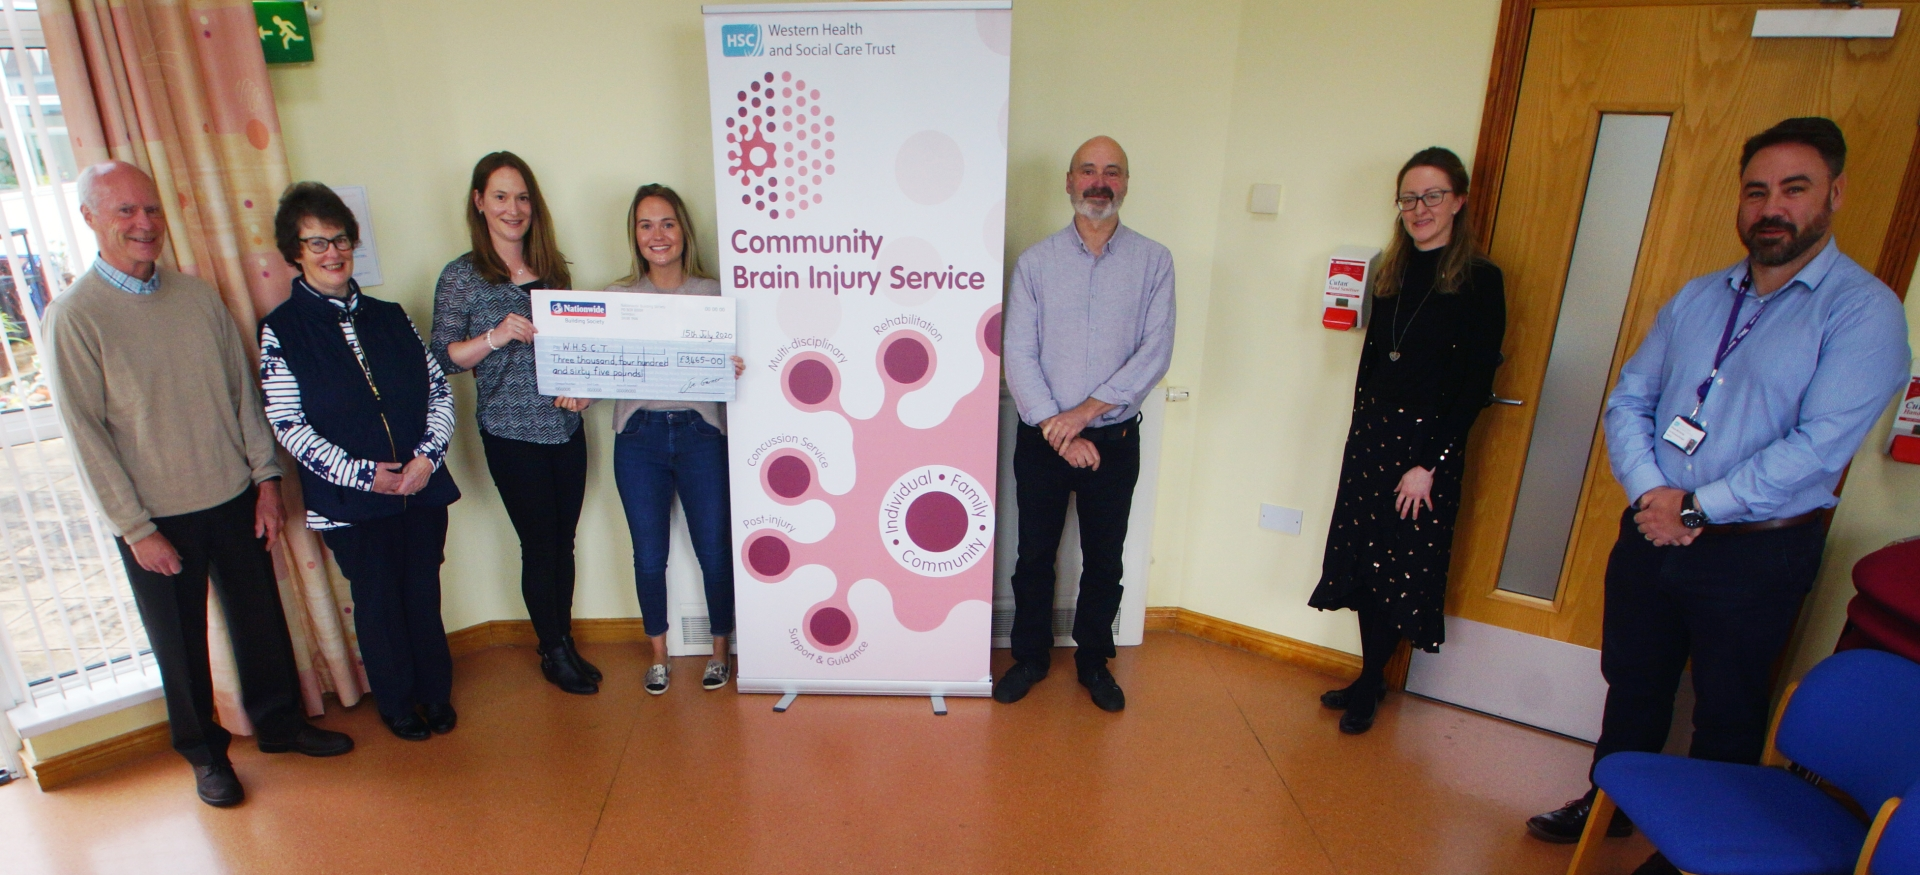 Pictured yesterday at the handing over of the cheque are, from left, Katie's parents, John and Wendy, Lizzie, Katie, Dr Paul Johnston, clinical psychologist, Carmel Greene, occupational therapist, and Dr Shane McCarney, consultant clinical lead at the Community Brain Injury Team in Derry